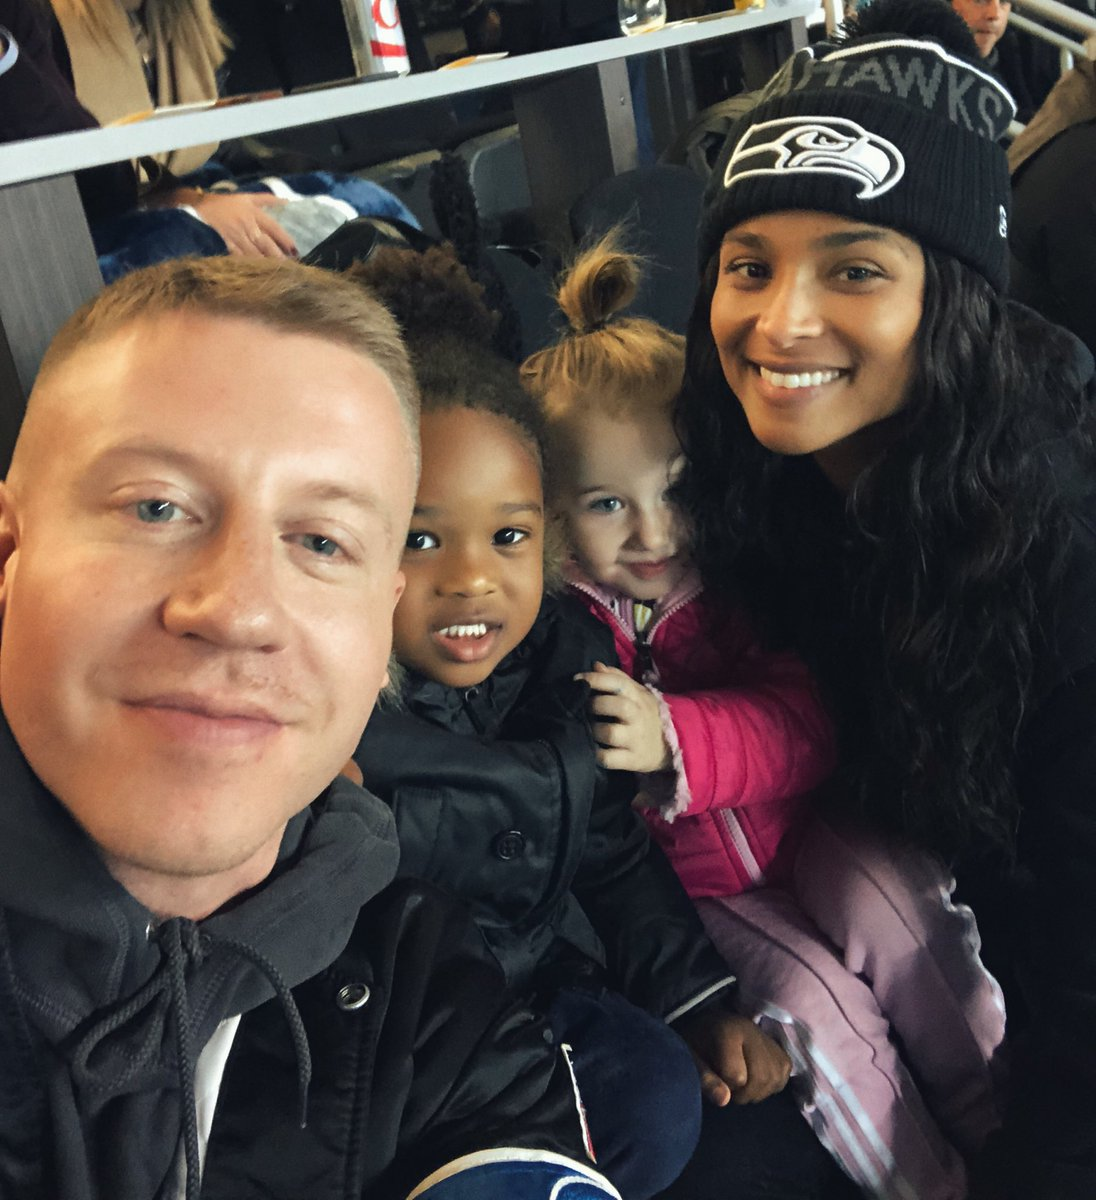 Fun Times With Our Kiddos!  @Macklemore #GoHawks https://t.co/xouGvmJZRU